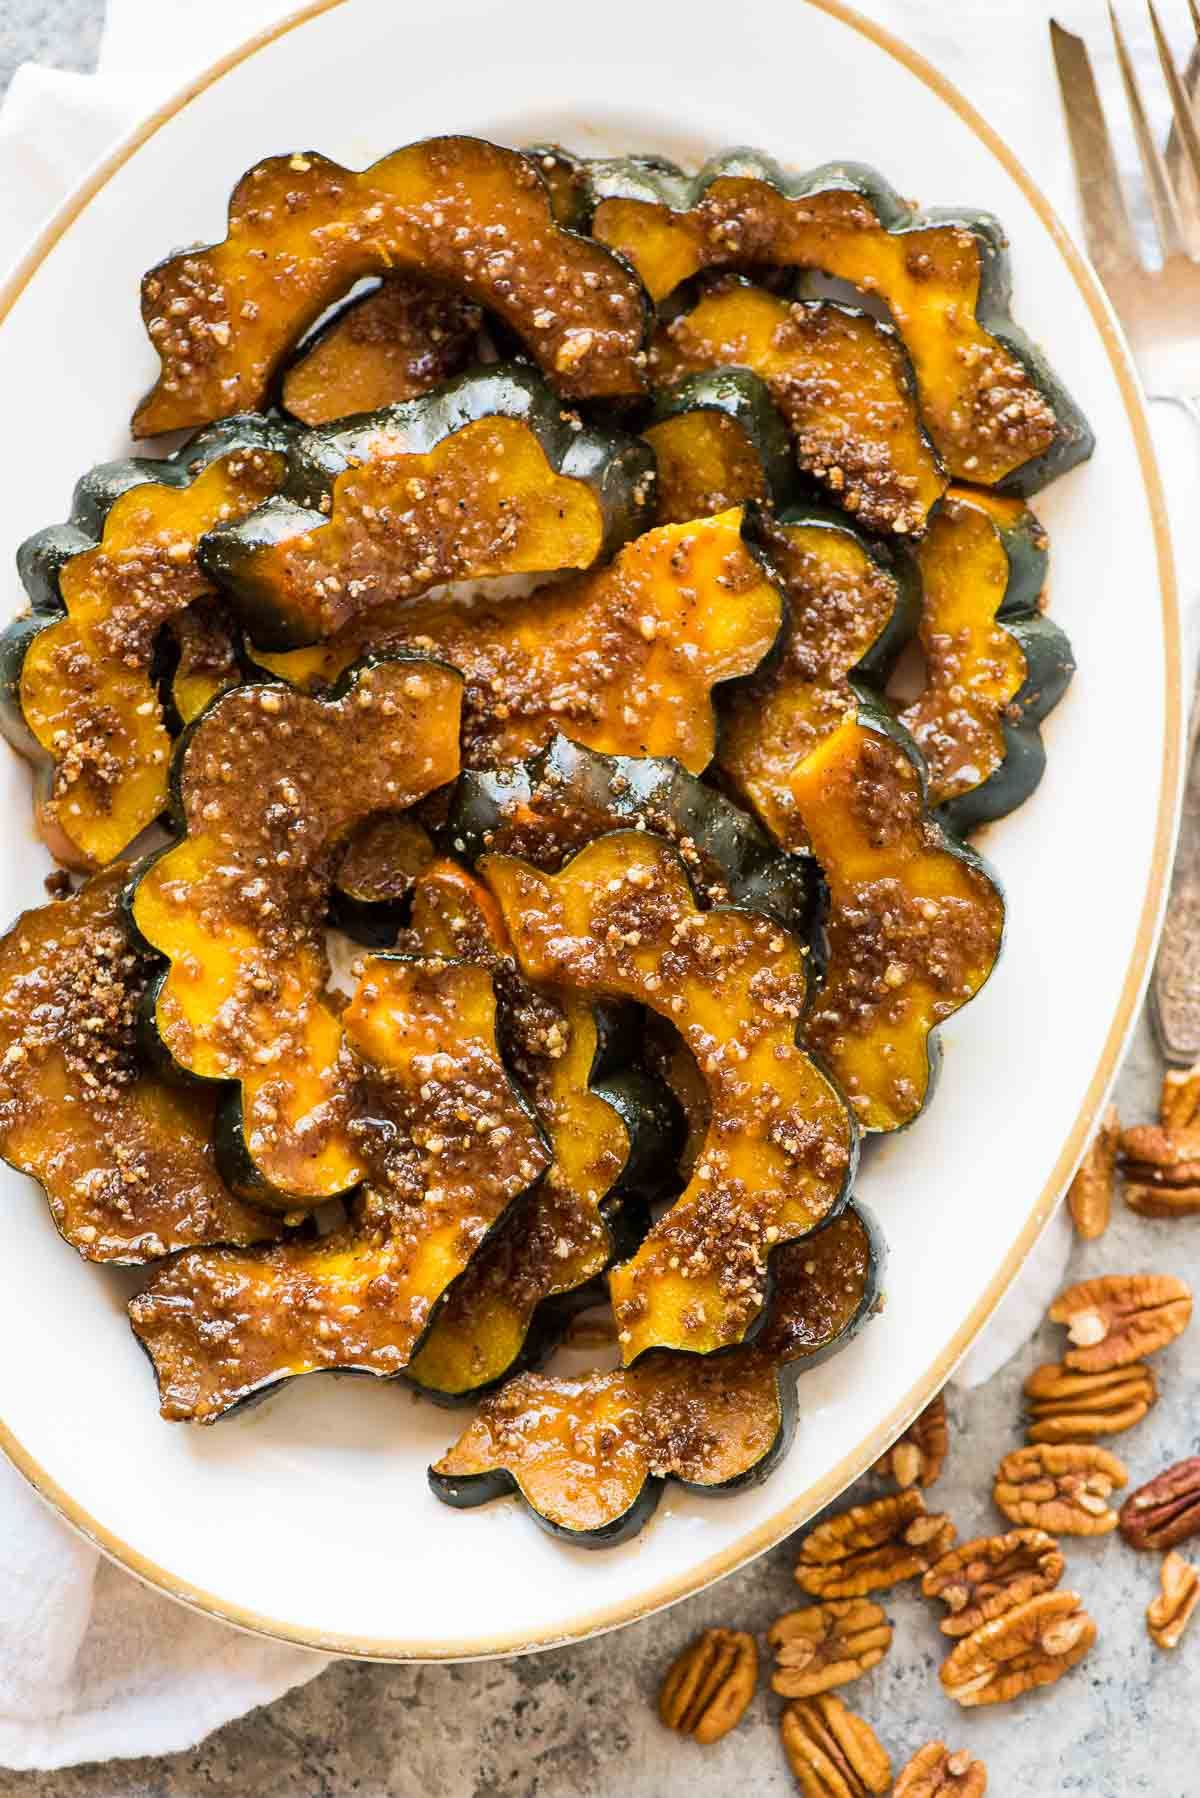 Baked Acorn Squash Slices With Brown Sugar And Pecans A Few